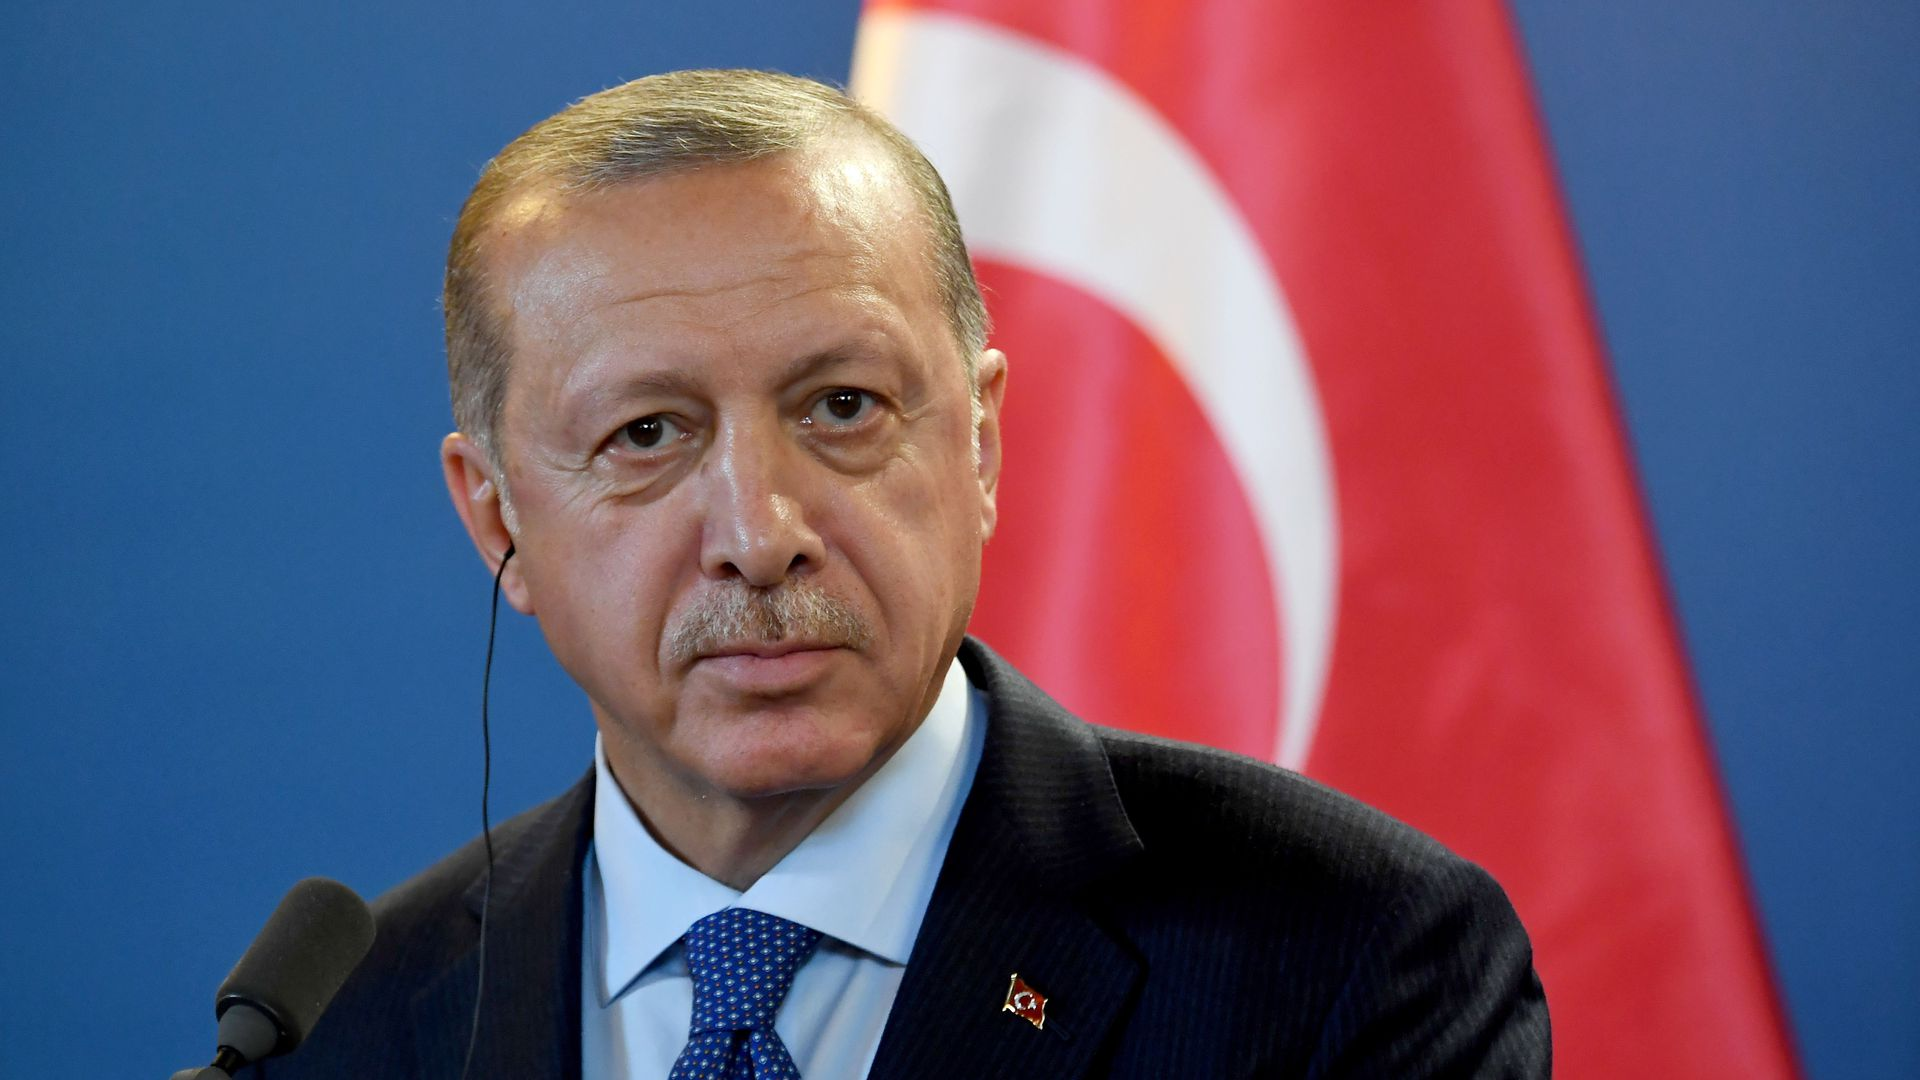 Turkish President Erdogan: before Khashoggi visited the Saudi consulate, teams of Saudis arrived in Istanbul, visited the Saudi consulate, explored Belgrad Forest and the city of Yalova, destroyed the consulate's CCTV hard drive in anticipation of Khashoggi's arrival, and included Saudi generals.